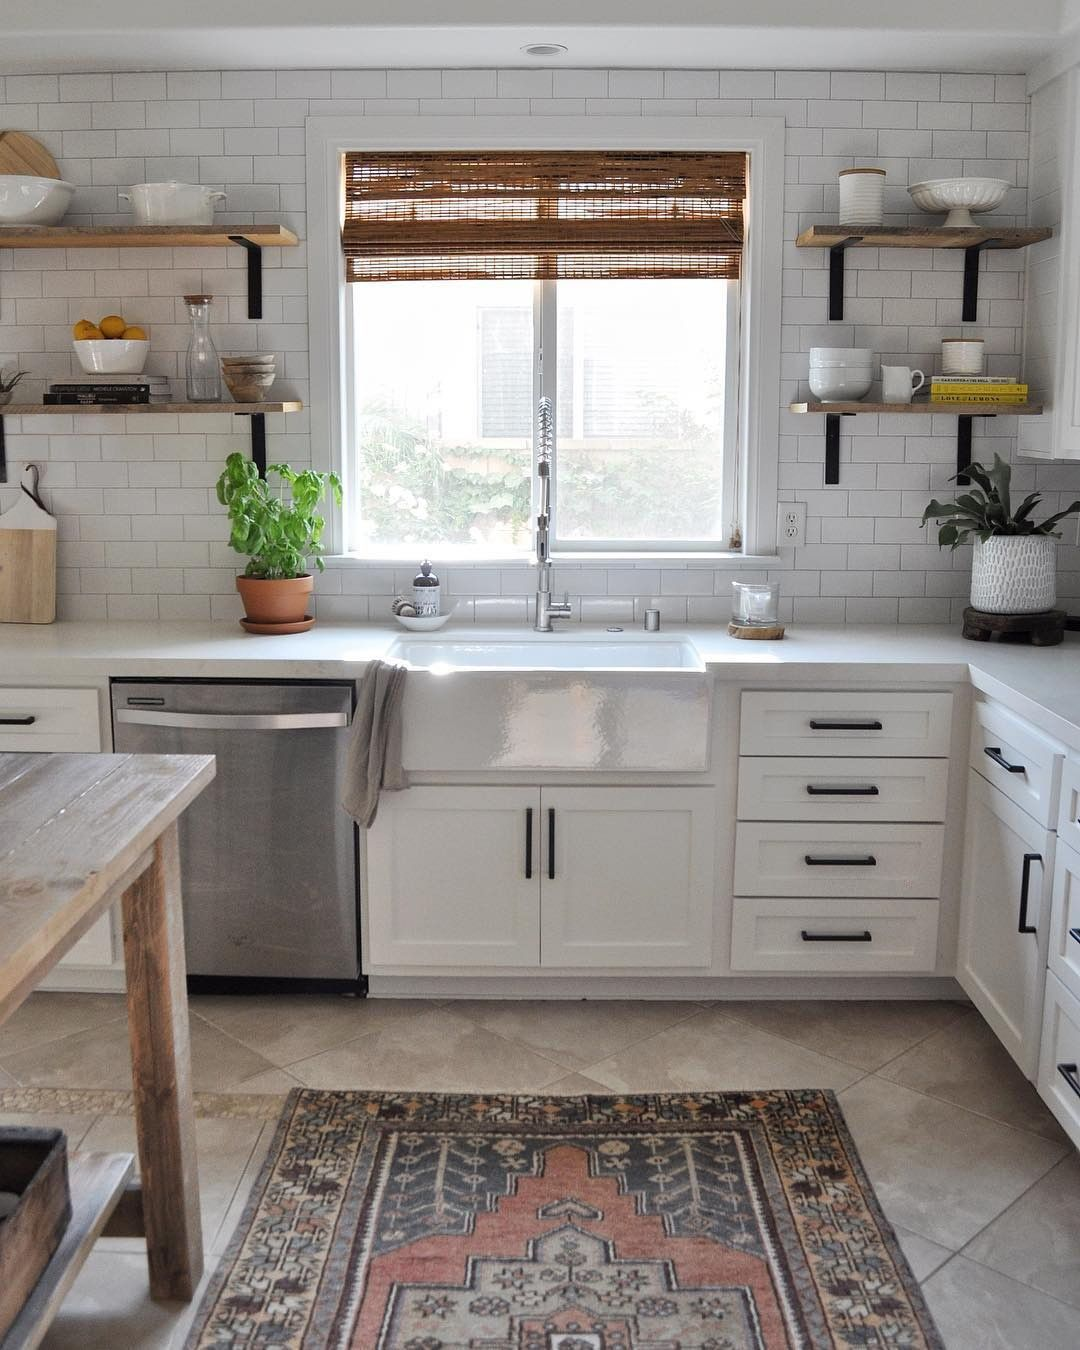 33 Plain Front Reversible Apron Farm Sink White Farmhouse Sink White Kitchen Remodeling White Modern Kitchen